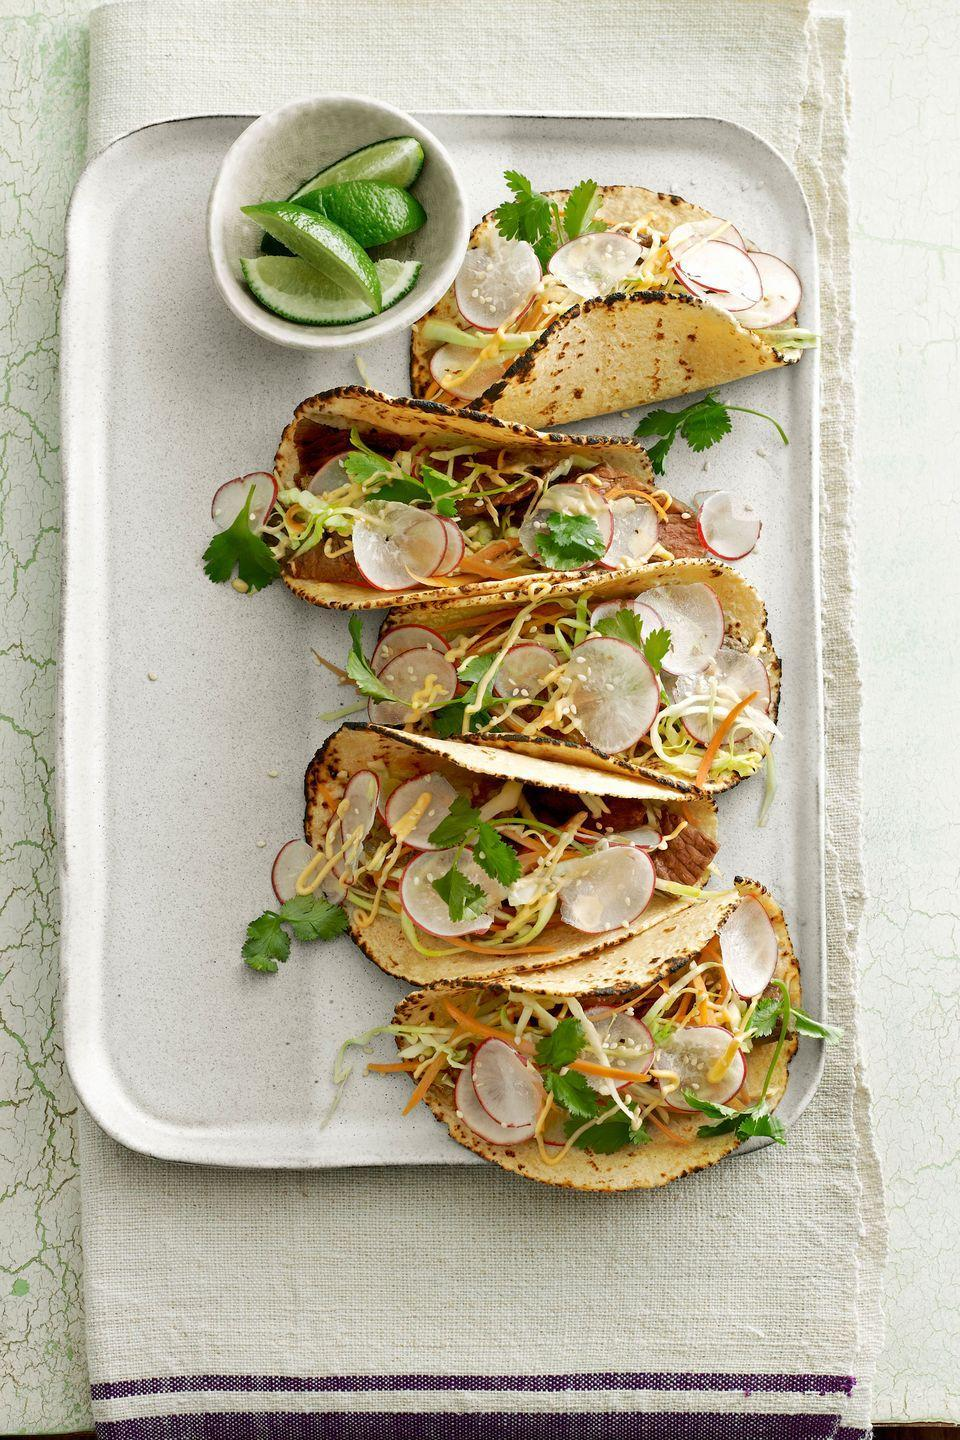 "<p>Try juicy Thai-marinated steak for a new spin on usual tacos. Plus, these are ready in just 30 minutes! </p><p><a href=""https://www.countryliving.com/food-drinks/recipes/a4169/thai-steak-tacos-recipe-clv0513/"" rel=""nofollow noopener"" target=""_blank"" data-ylk=""slk:Get the recipe."" class=""link rapid-noclick-resp""><strong>Get the recipe.</strong></a></p>"